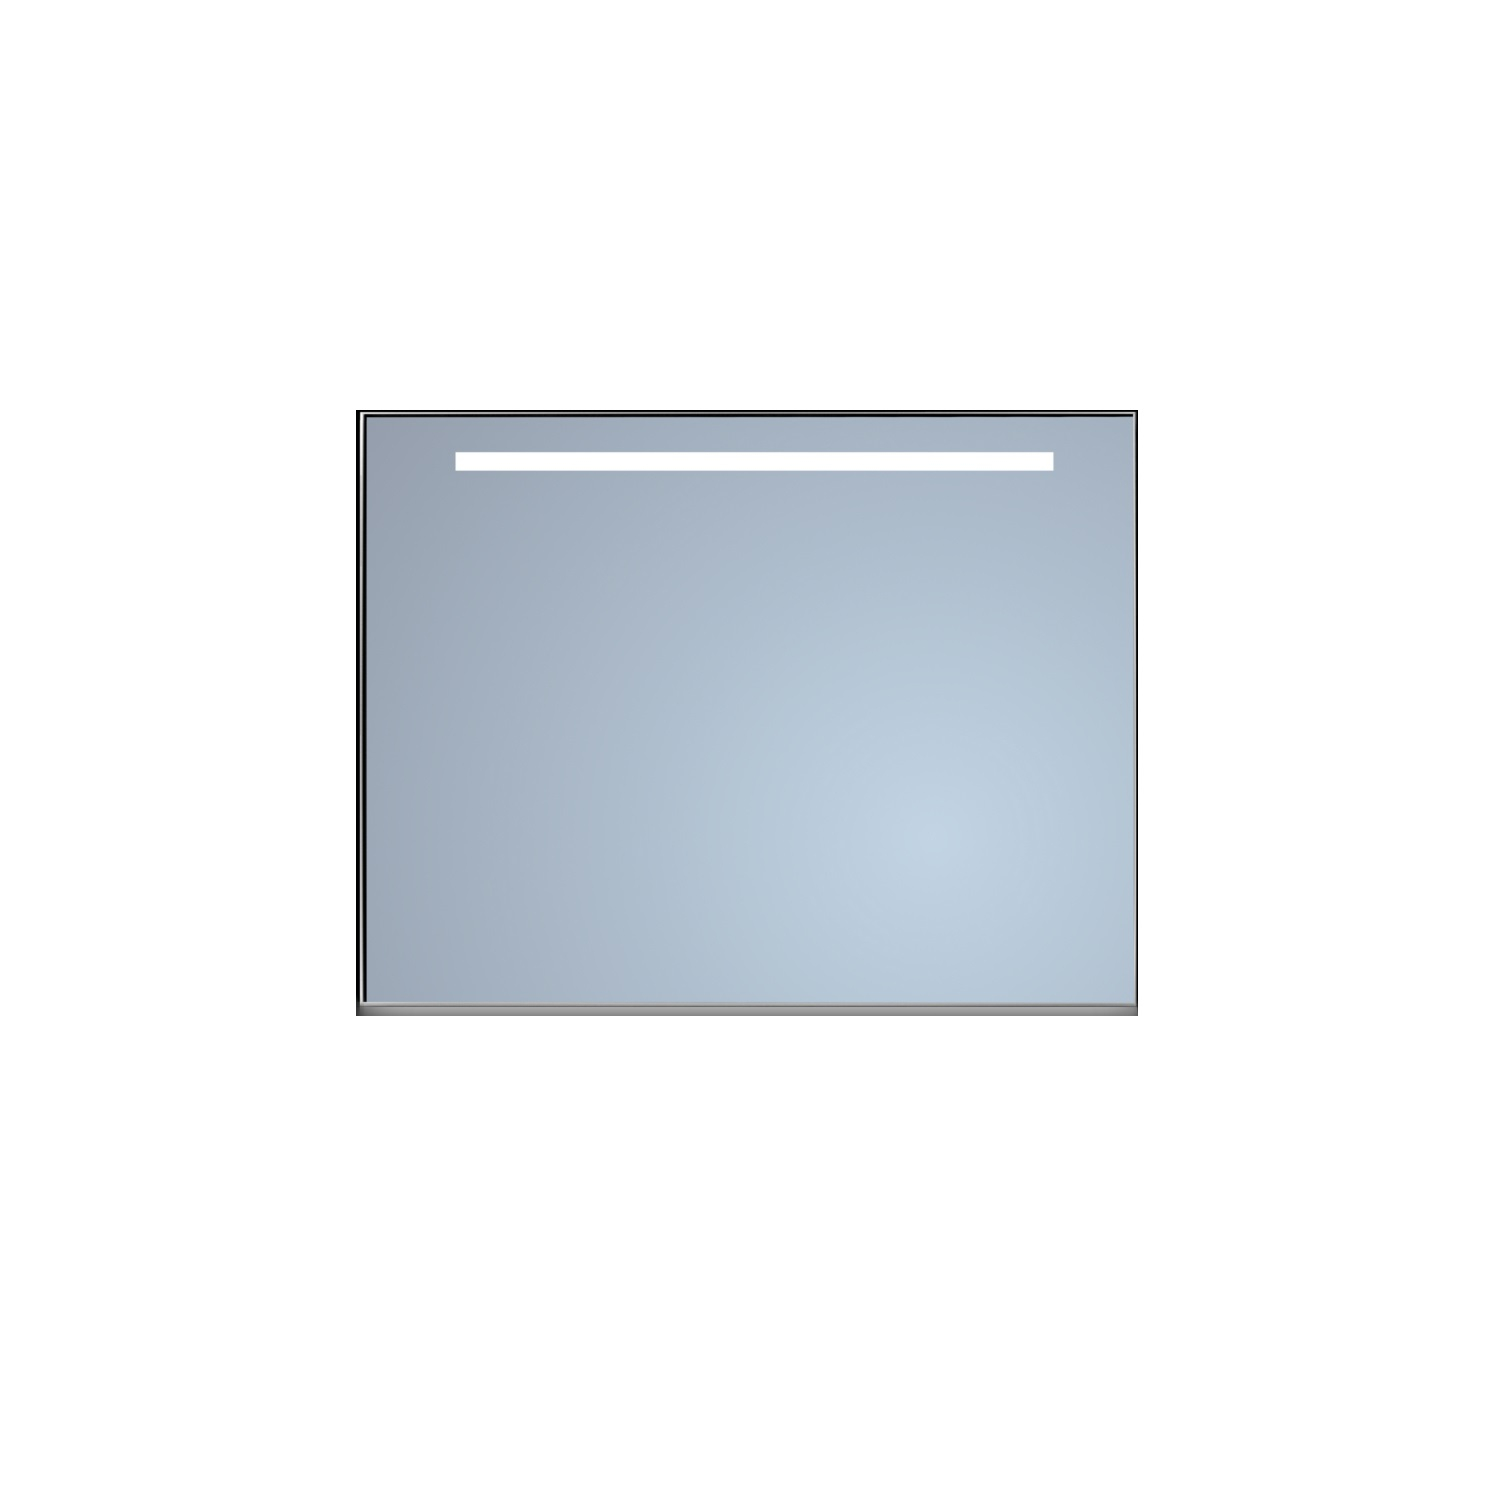 Badkamerspiegel Sanicare Q-Mirrors Ambiance en 'Cold White' LED-verlichting 70x75x3,5 Chroom Omlijsting